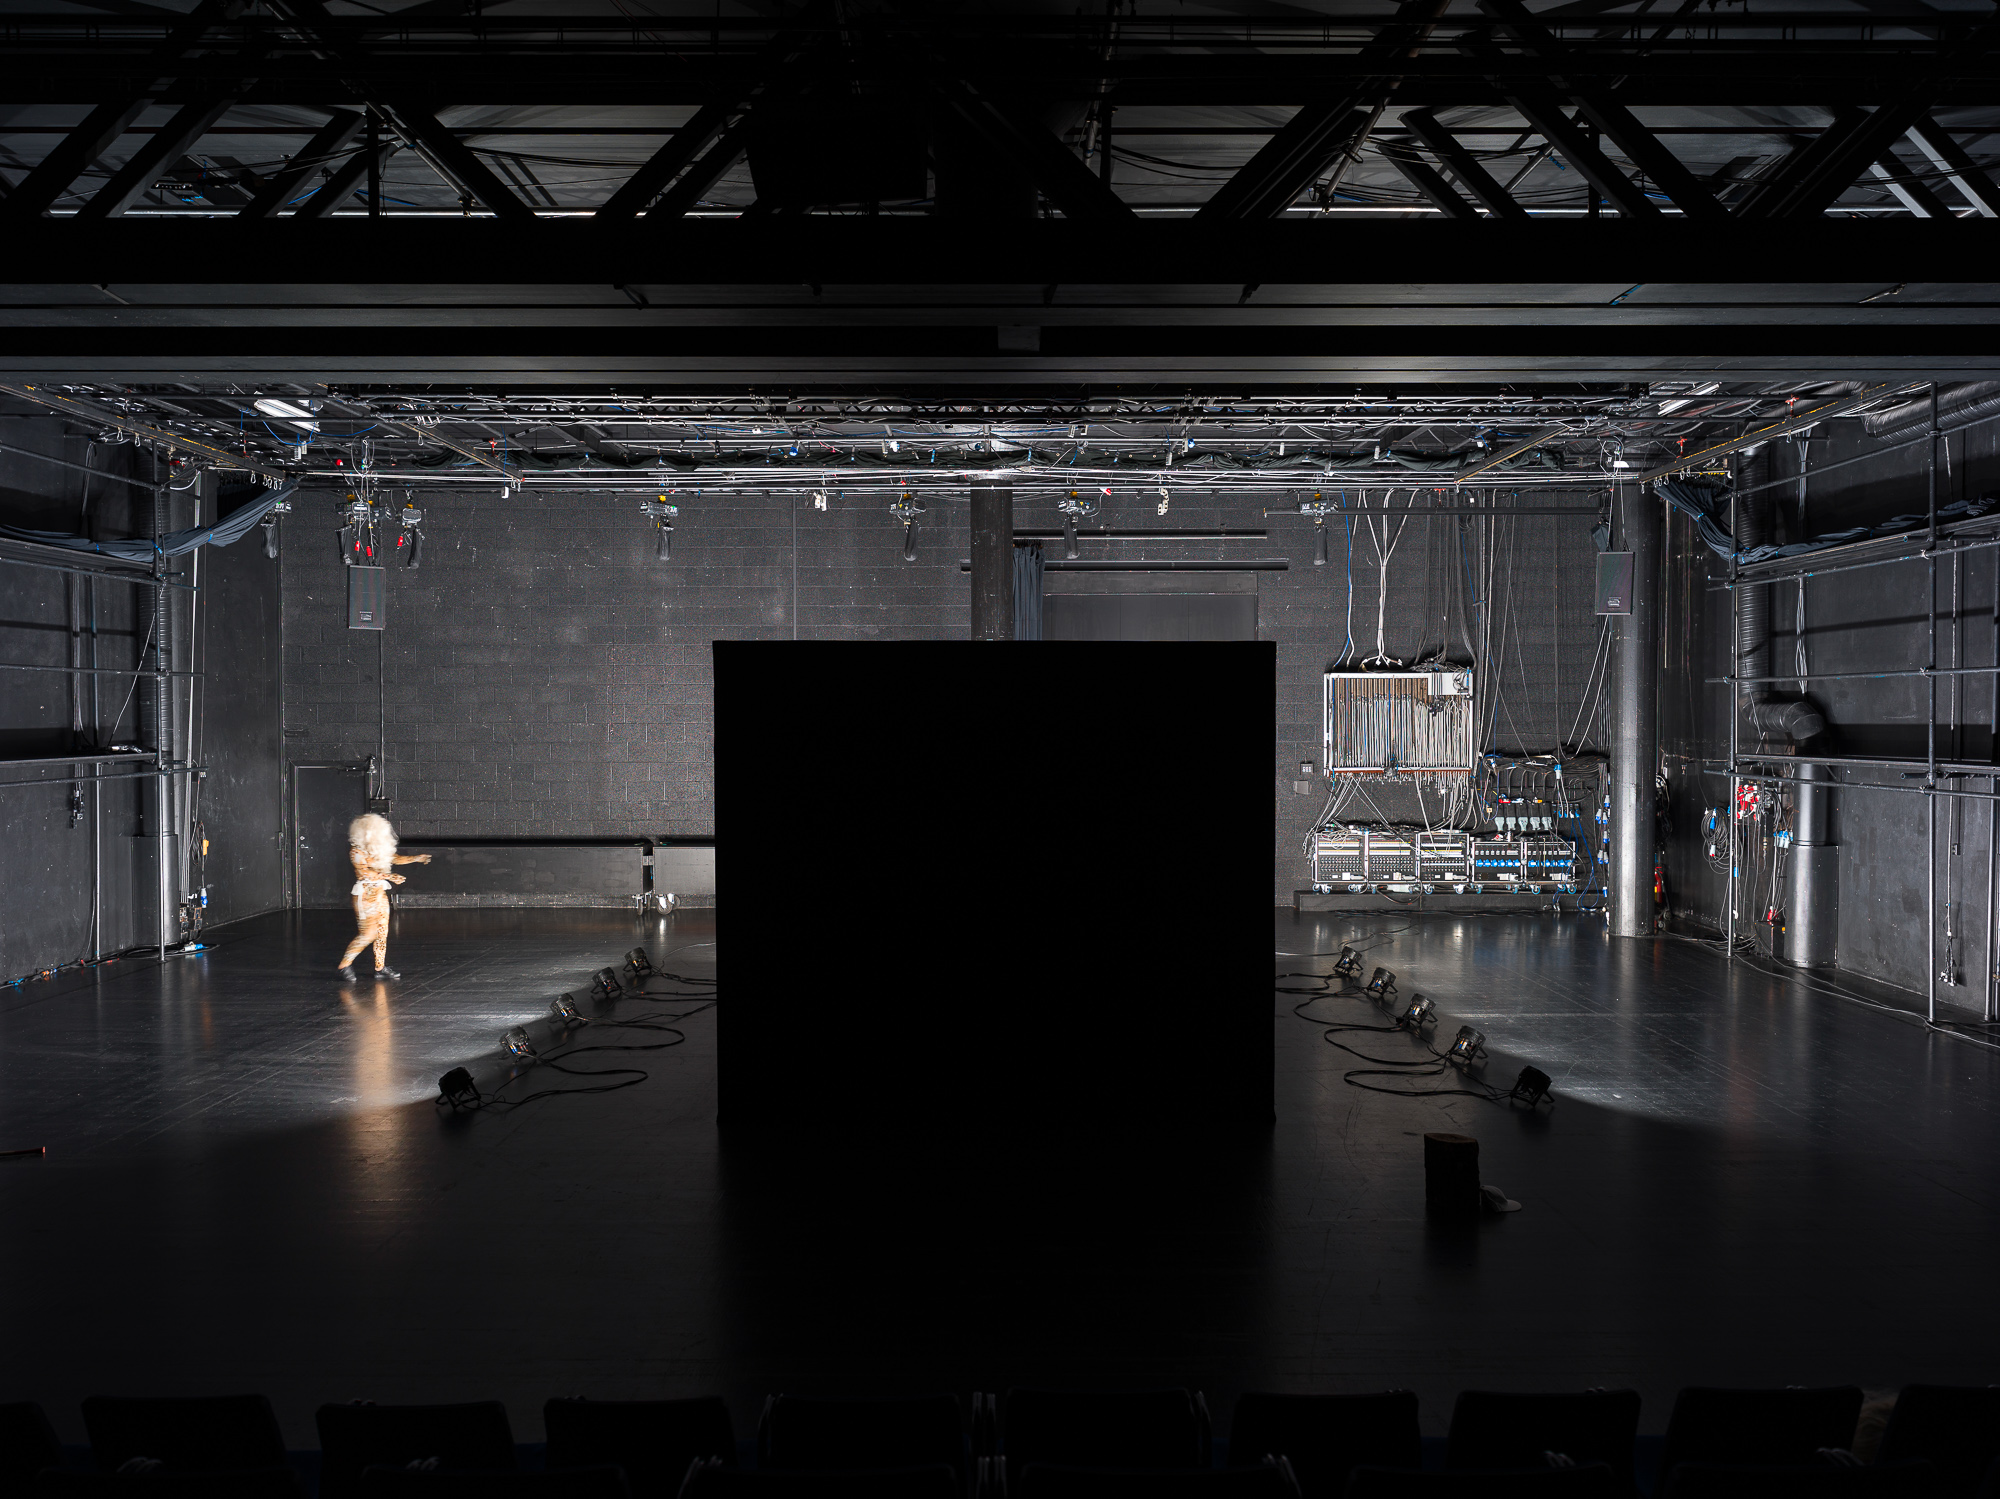 2019 The Big Dream (with Black Box teater), Jakob Oredsson